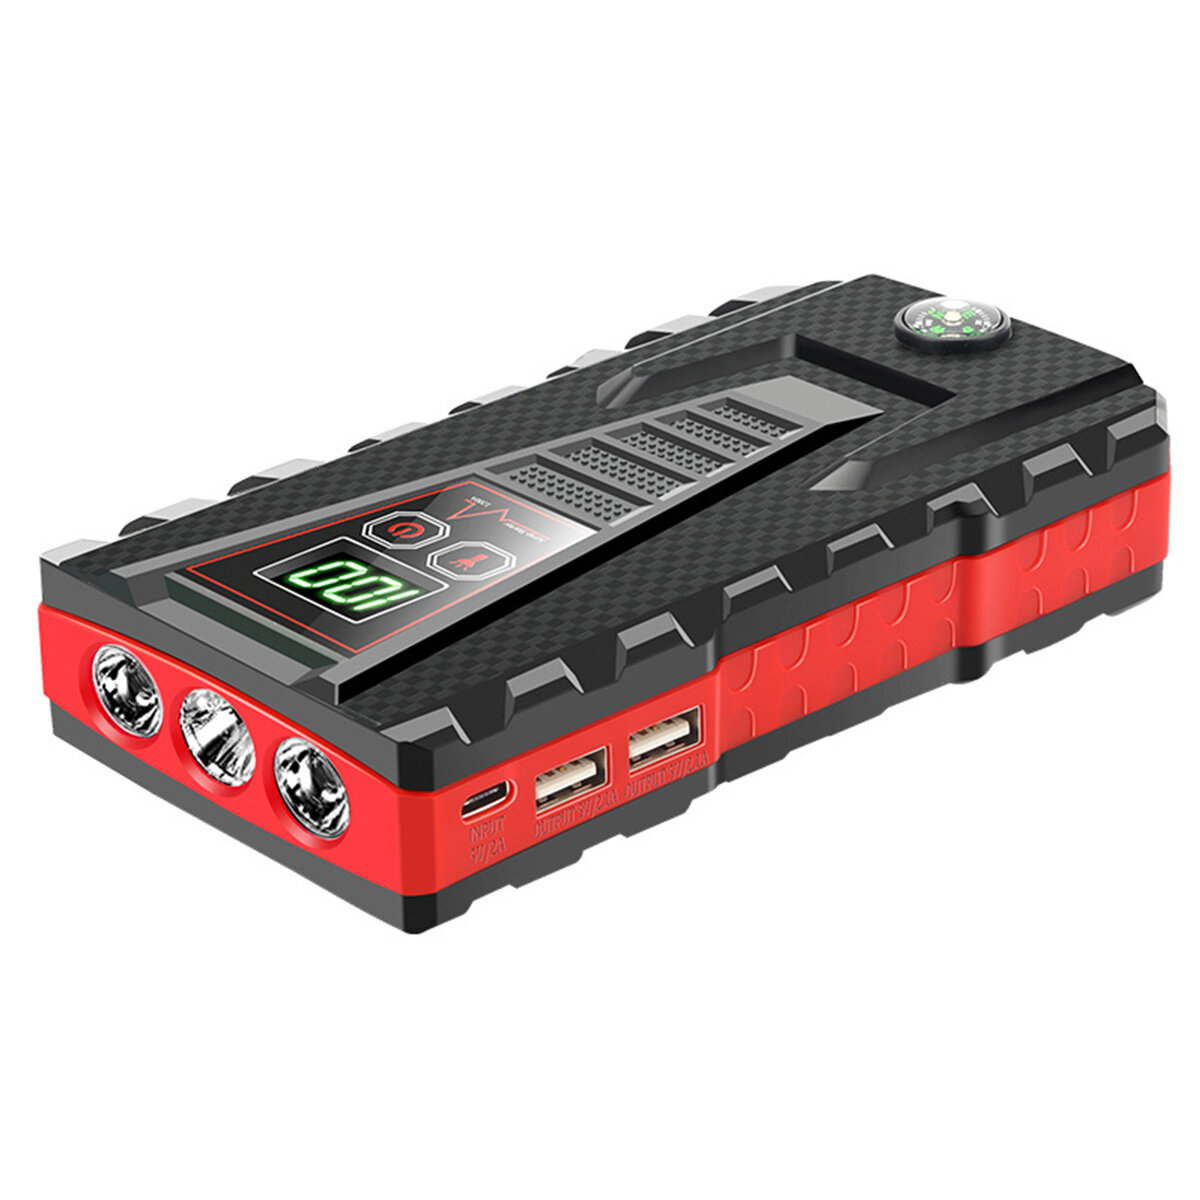 JX56 1200A 99800mAh Car Jump Starter Power Bank Starting Device Portable Emergency Battery Booster Auto Charger